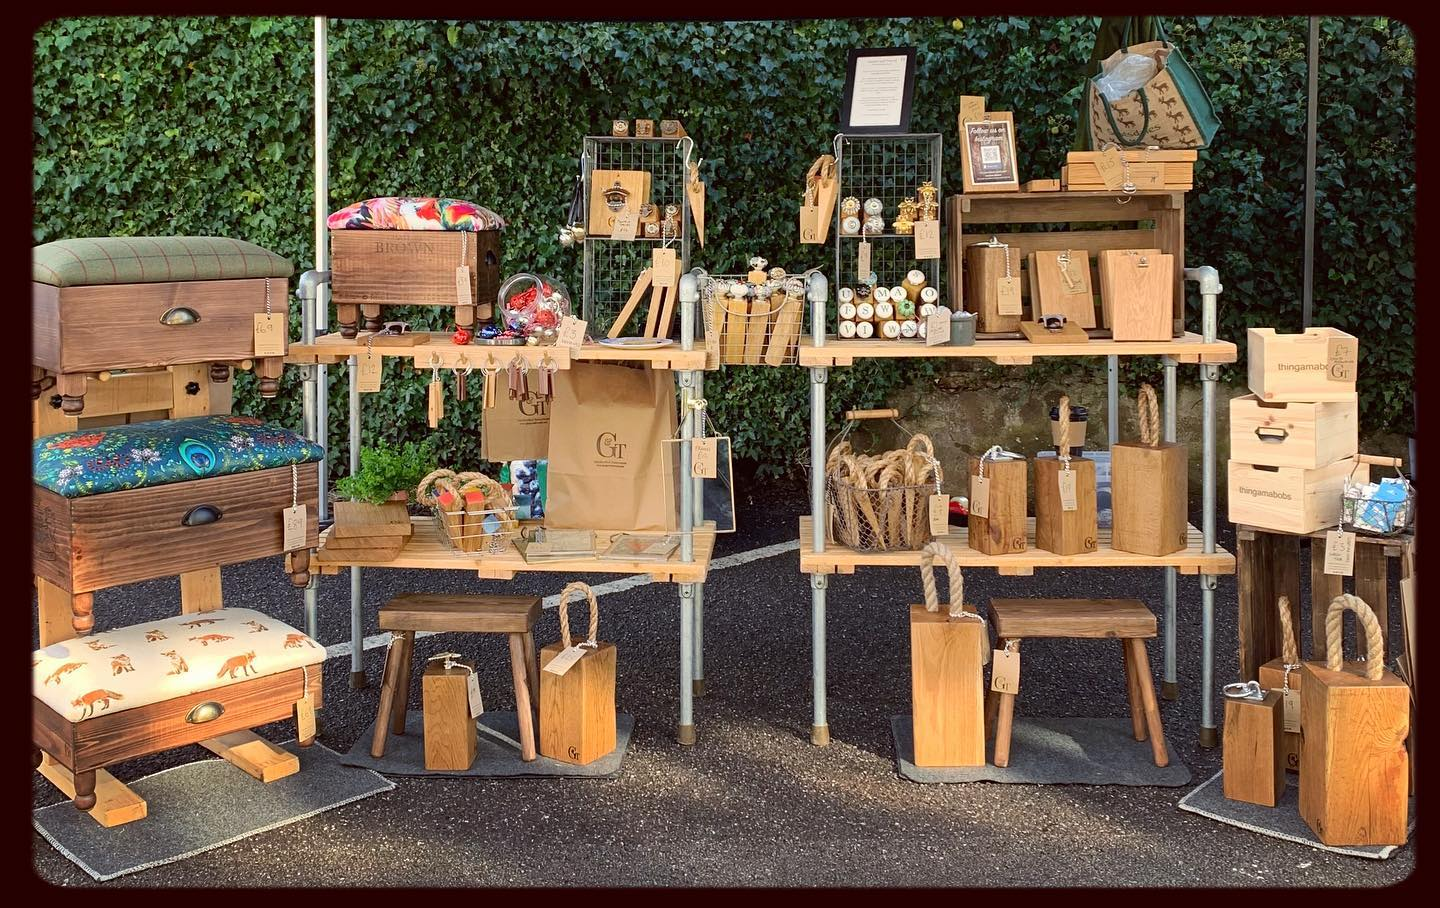 We will be back in beautiful Clevedon on Sunday for the @clevedonsundaymarket Looking forward to seeing lots of smiling faces and catching up with fellow traders. Fingers crossed for some fine weather! Stay safe everyone and hope to see some of you at the weekend!...#facesofclevedon #marketday #clevedonsundaymarket #community #spirit #bristol #handcrafted #homewares #lifestyle #weekends #dayout #shopindendent #shopsmall #shophandmade #suportsmallbusiness